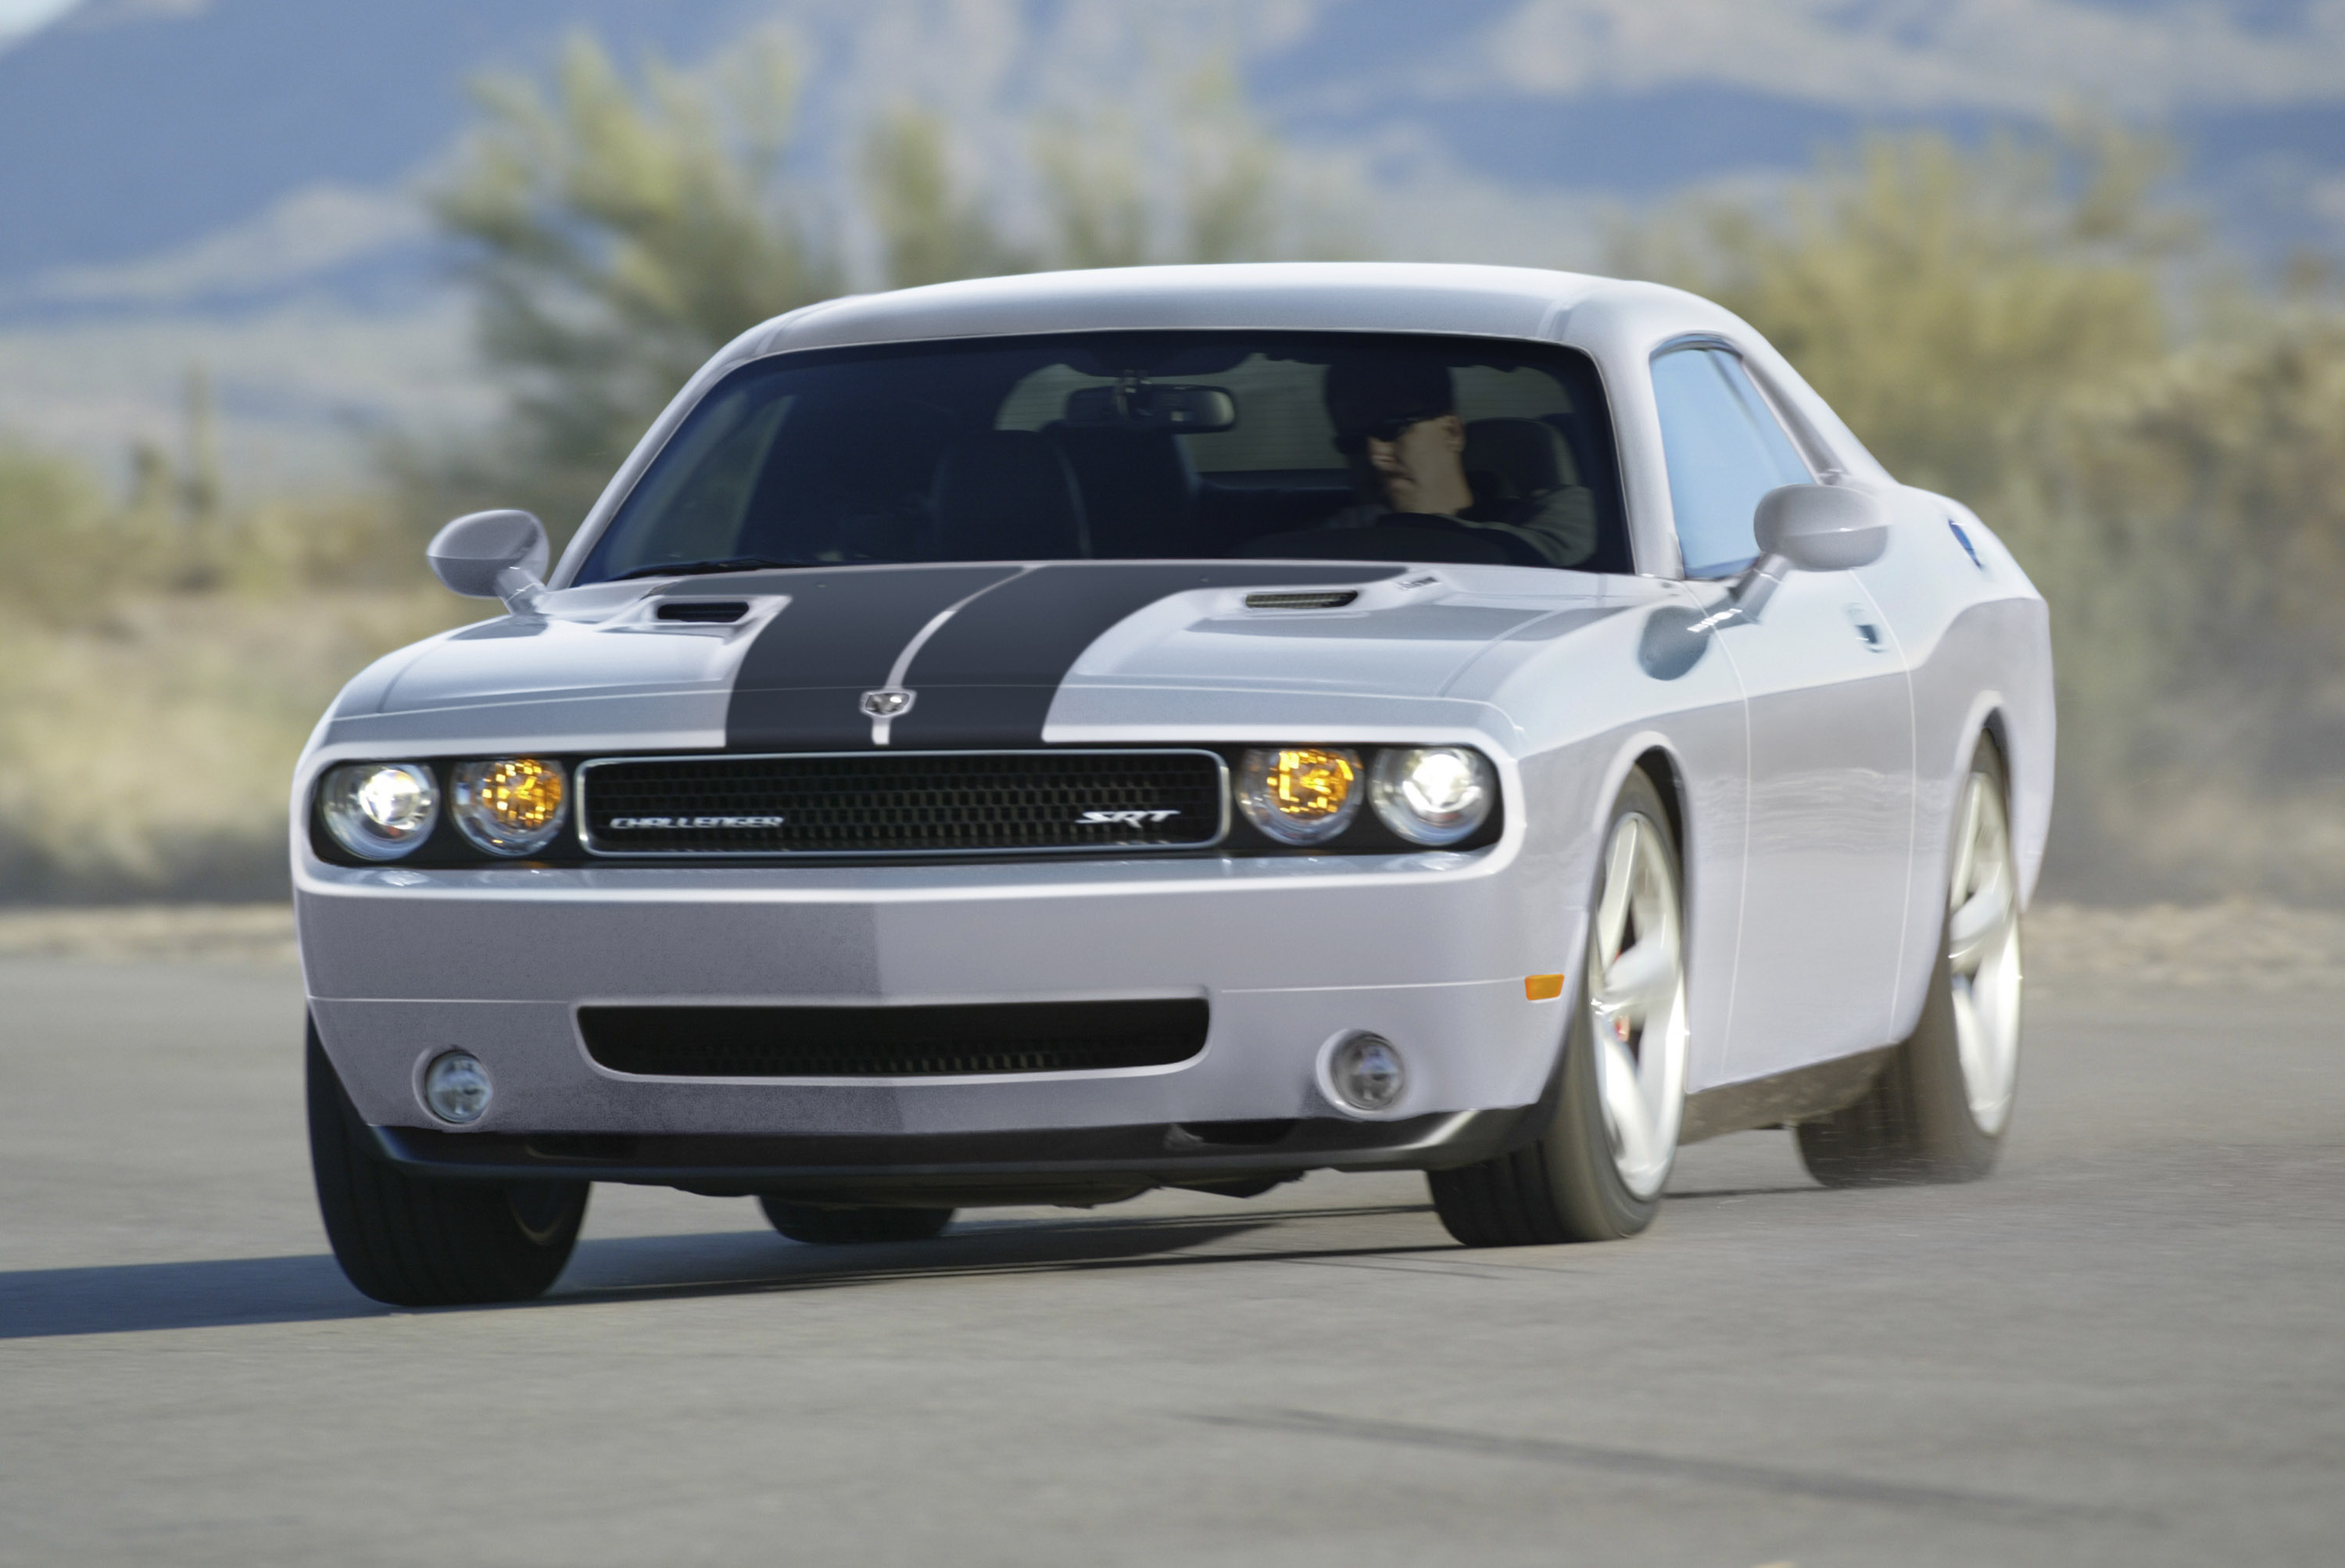 Mopar 174 Reveals Dodge Challenger Drag Race Package Cars At